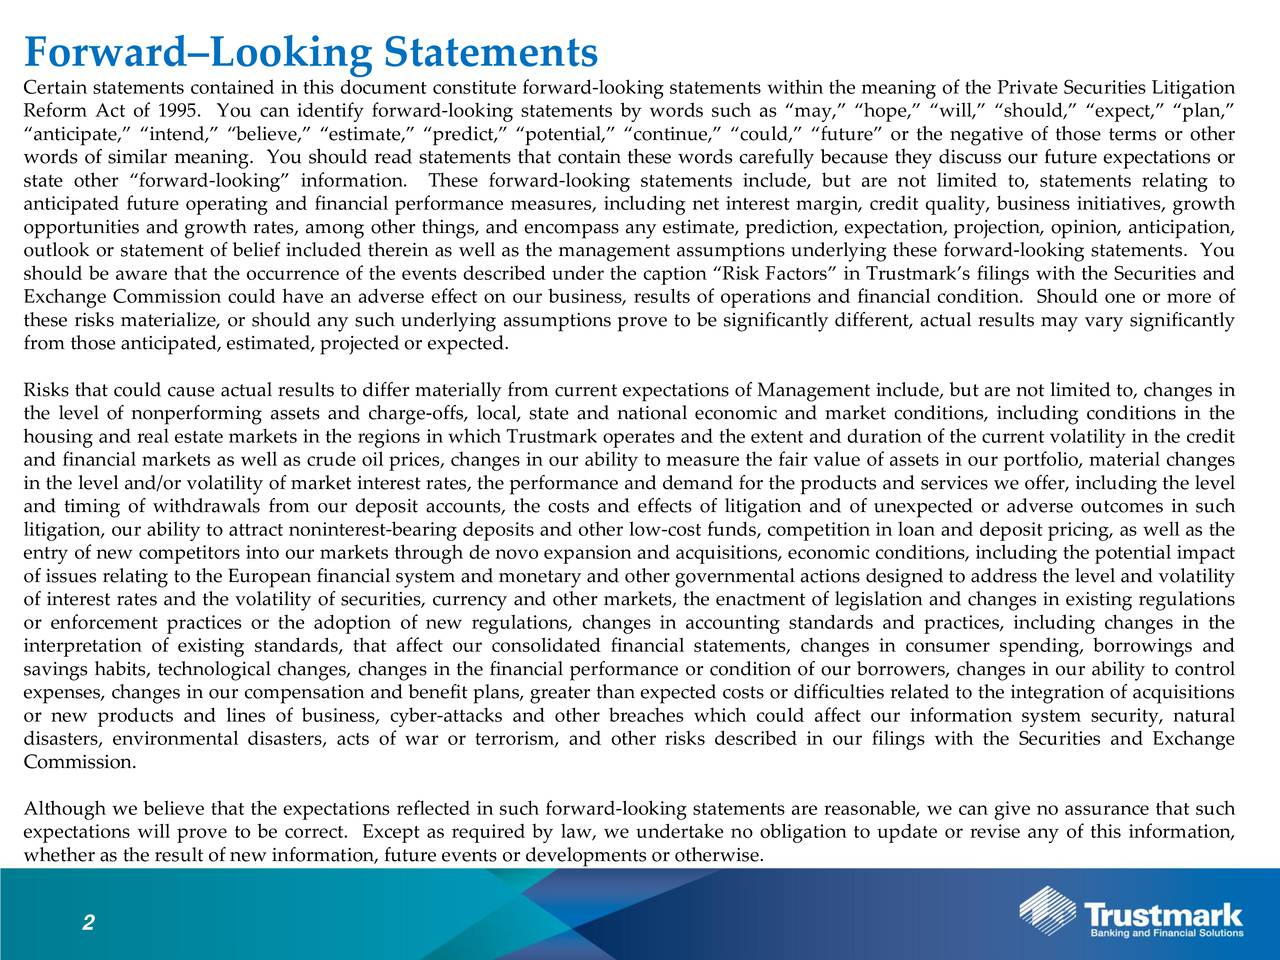 Certain statements contained in this document constitute forward-looking statements within the meaning of the Private Securities Litigation Reform Act of 1995. You can identify forward-looking statements by words such as may, hope, will, should, expect, plan, anticipate, intend, believe, estimate, predict, potential, continue, could, future or the negative of those terms or other words of similar meaning. You should read statements that contain these words carefully because they discuss our future expectations or state other forward-looking information. These forward-looking statements include, but are not limited to, statements relating to anticipated future operating and financial performance measures, including net interest margin, credit quality, business initiatives, growth opportunities and growth rates, among other things, and encompass any estimate, prediction, expectation, projection, opinion, anticipation, outlook or statement of belief included therein as well as the management assumptions underlying these forward-looking statements. You should be aware that the occurrence of the events described under the caption Risk Factors in Trustmarks filings with the Securities and Exchange Commission could have an adverse effect on our business, results of operations and financial condition. Should one or more of these risks materialize, or should any such underlying assumptions prove to be significantly different, actual results may vary significantly from those anticipated, estimated, projected or expected. Risks that could cause actual results to differ materially from current expectations of Management include, but are not limited to, changes in the level of nonperforming assets and charge-offs, local, state and national economic and market conditions, including conditions in the housing and real estate markets in the regions in which Trustmark operates and the extent and duration of the current volatility in the credit and financial markets as well as crude oil prices, changes in our ability to measure the fair value of assets in our portfolio, material changes in the level and/or volatility of market interest rates, the performance and demand for the products and services we offer, including the level and timing of withdrawals from our deposit accounts, the costs and effects of litigation and of unexpected or adverse outcomes in such litigation, our ability to attract noninterest-bearing deposits and other low-cost funds, competition in loan and deposit pricing, as well as the entry of new competitors into our markets through de novo expansion and acquisitions, economic conditions, including the potential impact of issues relating to the European financial system and monetary and other governmental actions designed to address the level and volatility of interest rates and the volatility of securities, currency and other markets, the enactment of legislation and changes in existing regulations or enforcement practices or the adoption of new regulations, changes in accounting standards and practices, including changes in the interpretation of existing standards, that affect our consolidated financial statements, changes in consumer spending, borrowings and savings habits, technological changes, changes in the financial performance or condition of our borrowers, changes in our ability to control expenses, changes in our compensation and benefit plans, greater than expected costs or difficulties related to the integration of acquisitions or new products and lines of business, cyber-attacks and other breaches which could affect our information system security, natural disasters, environmental disasters, acts of war or terrorism, and other risks described in our filings with the Securities and Exchange Commission. Although we believe that the expectations reflected in such forward-looking statements are reasonable, we can give no assurance that such expectations will prove to be correct. Except as required by law, we undertake no obligation to update or revise any of this information, whether as the result of new information, future events or developments or otherwise. 2